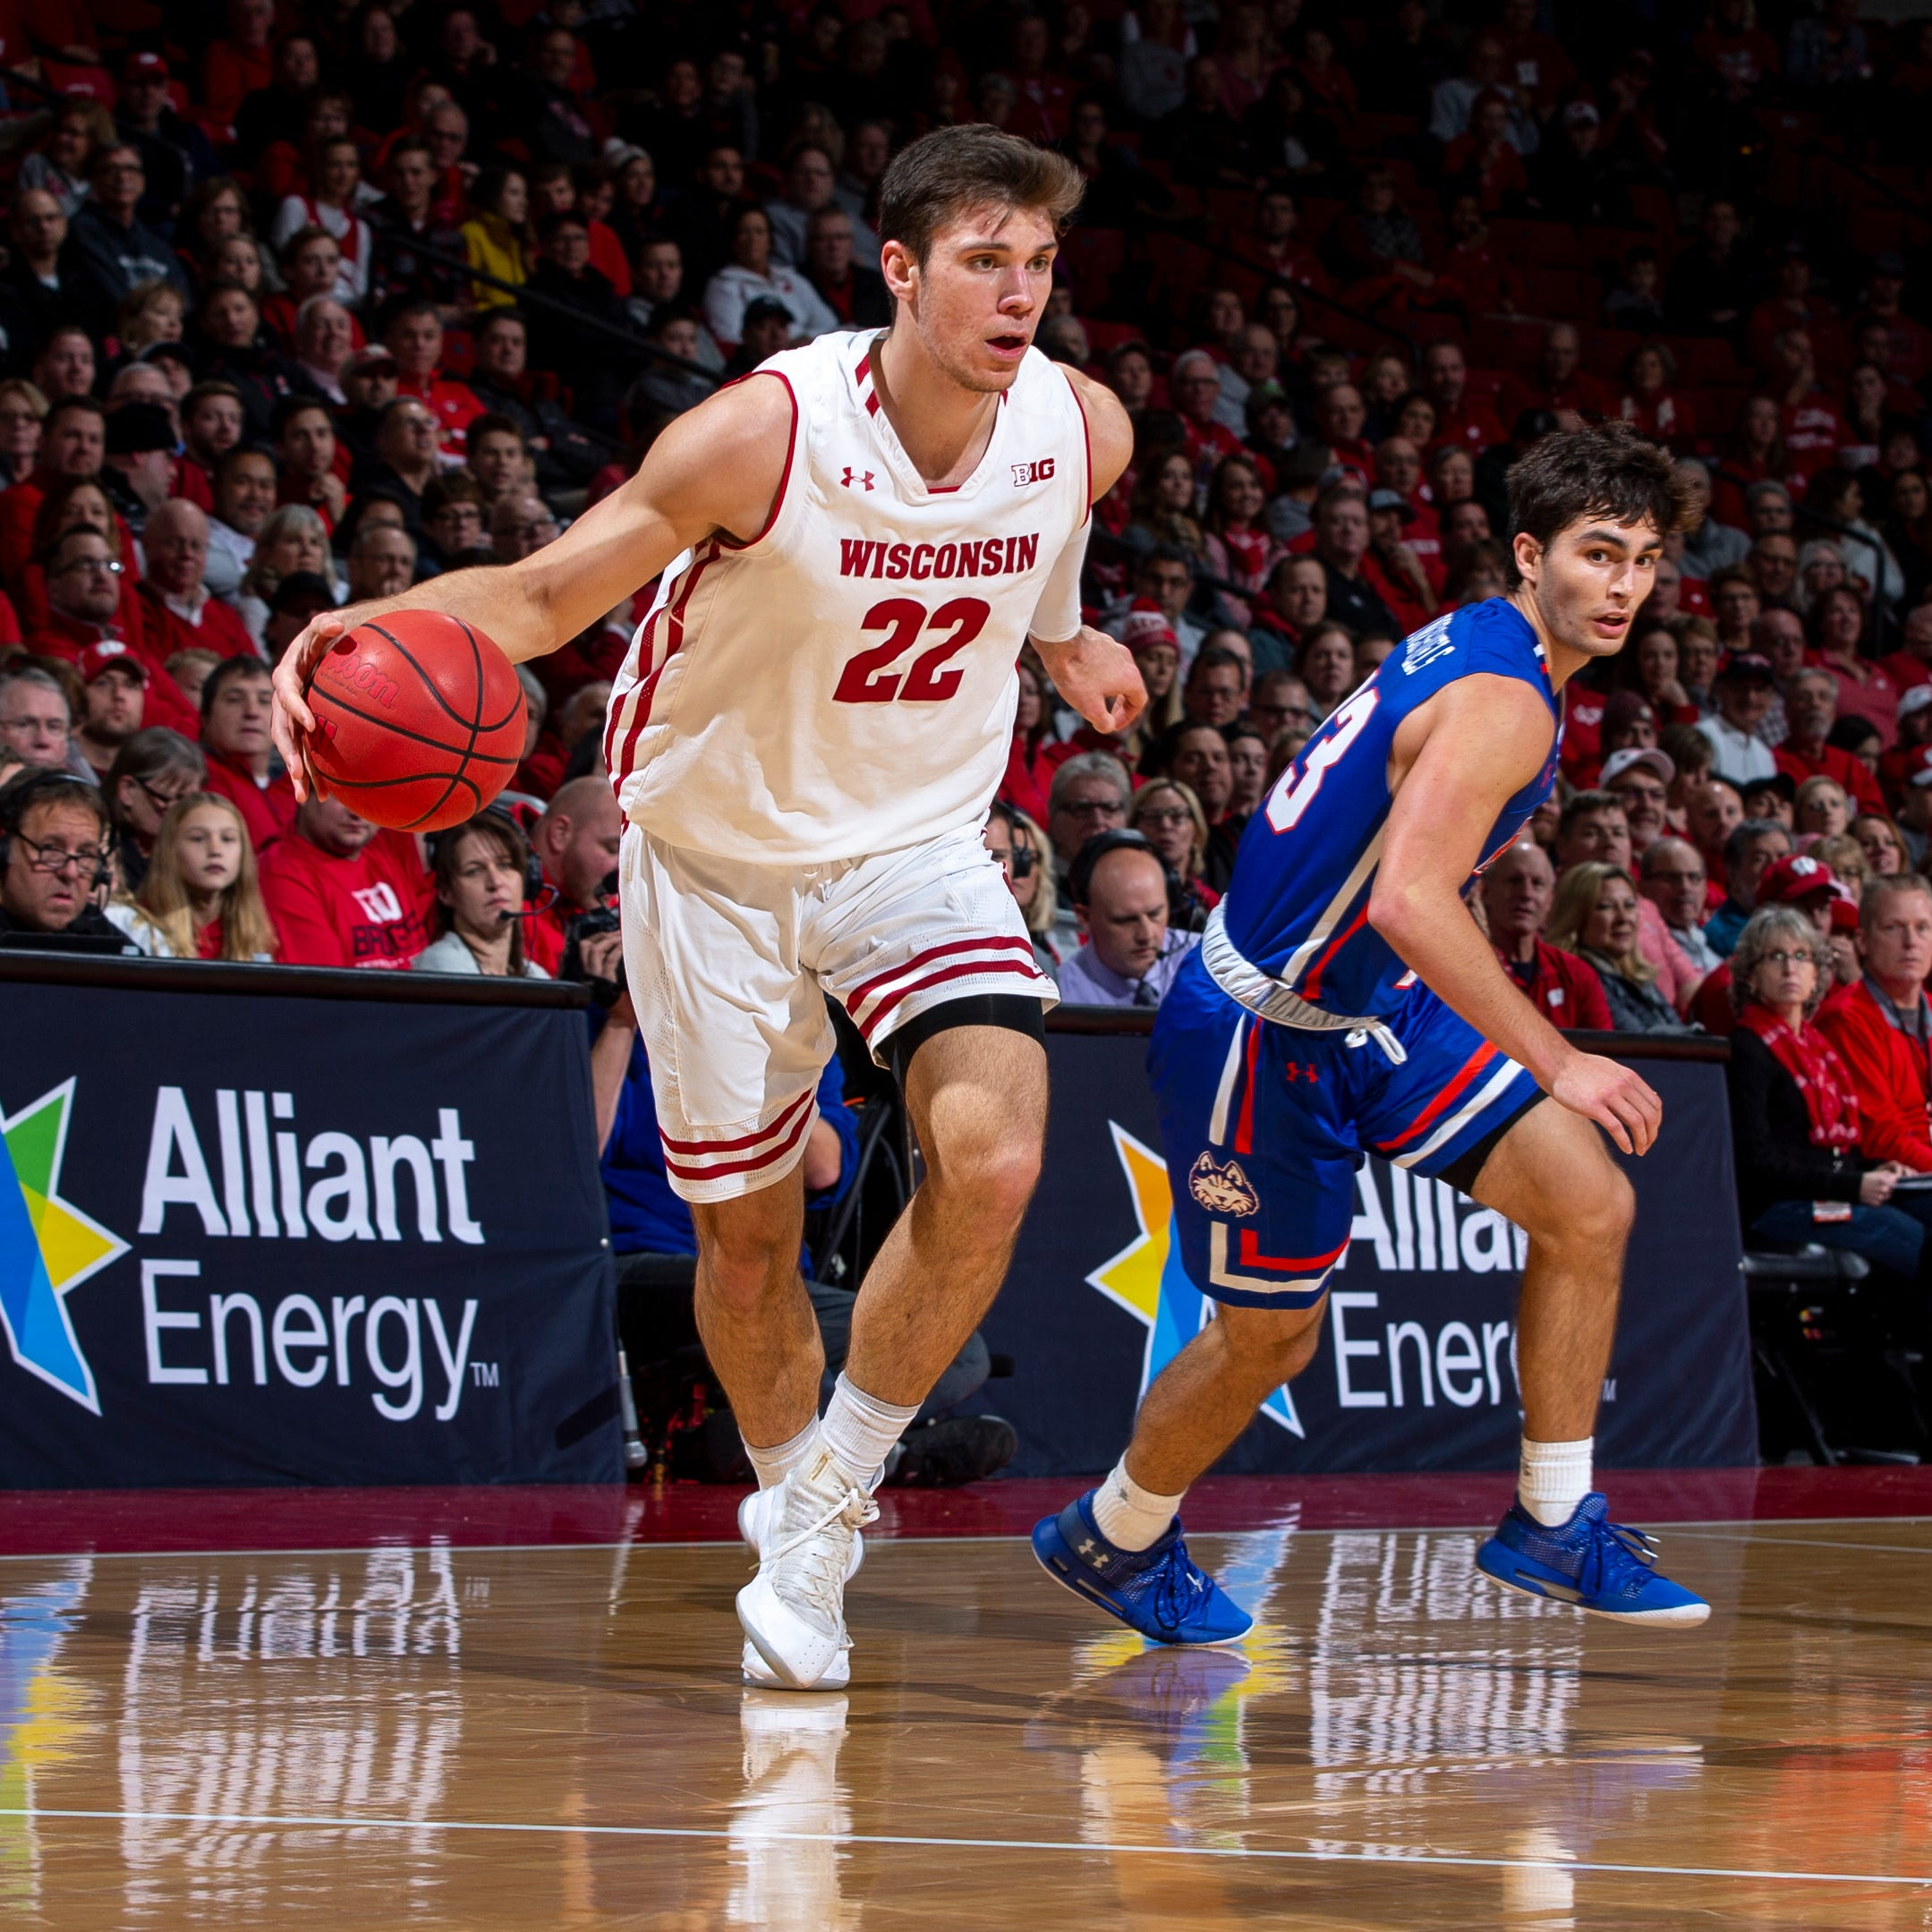 UW 96, Houston Baptist 59: Happ sets rebounding mark; Badgers cruise to victory